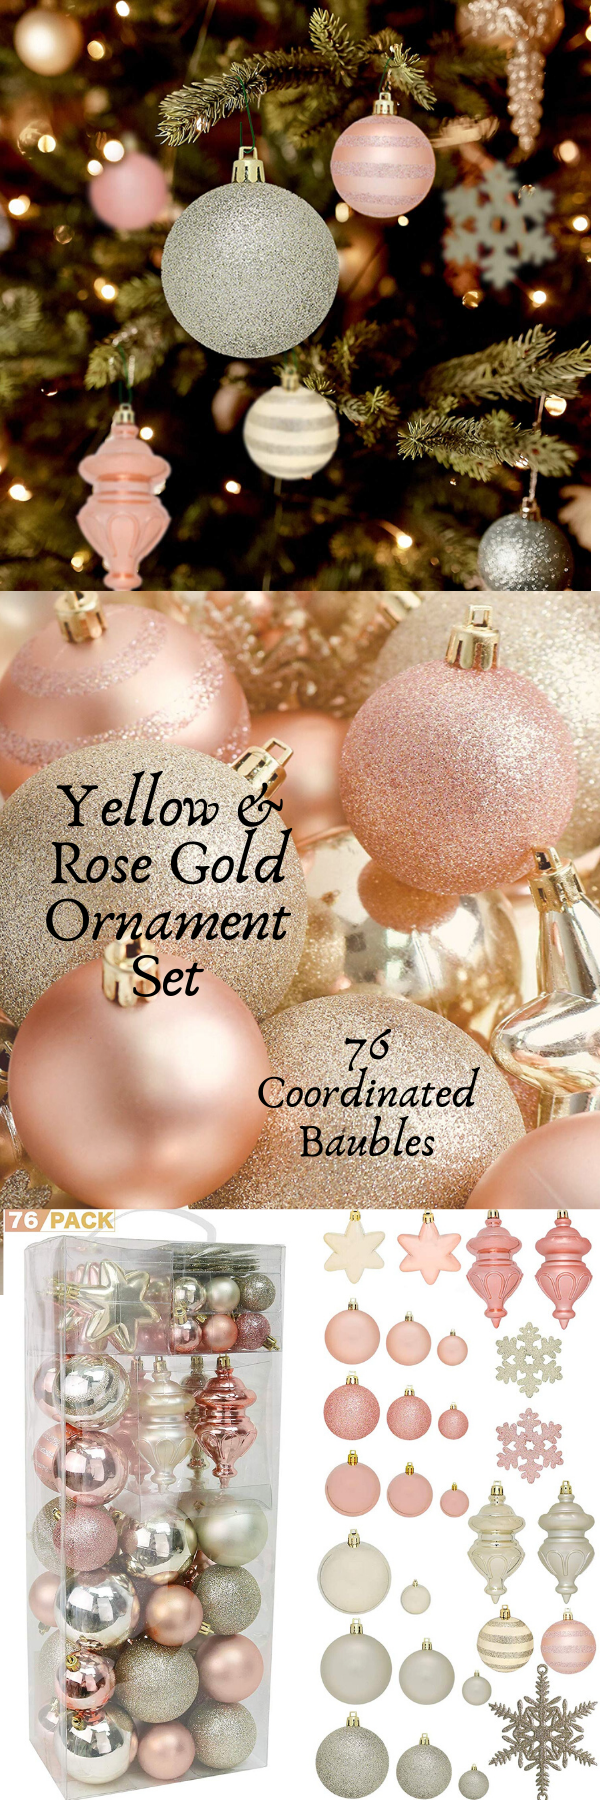 Yellow Rose Gold Ornament Set Ornament Set Gold Ornaments Yellow Roses